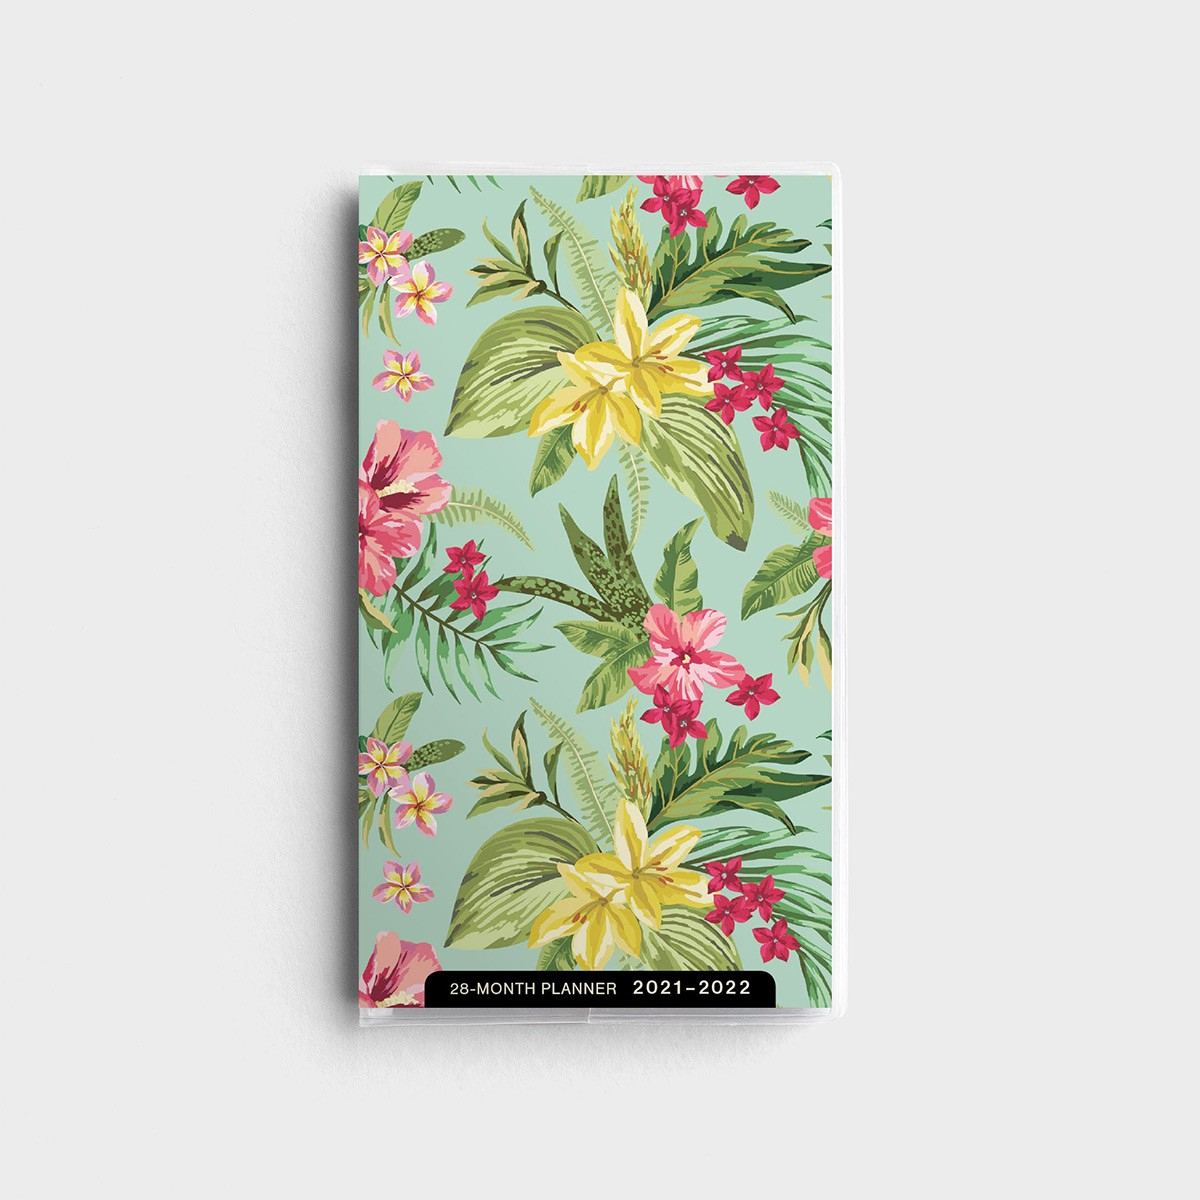 Tropical Floral - 2021-2022 - 28 Month Planner throughout Tropical Floral: Calendar 2021 Monthly